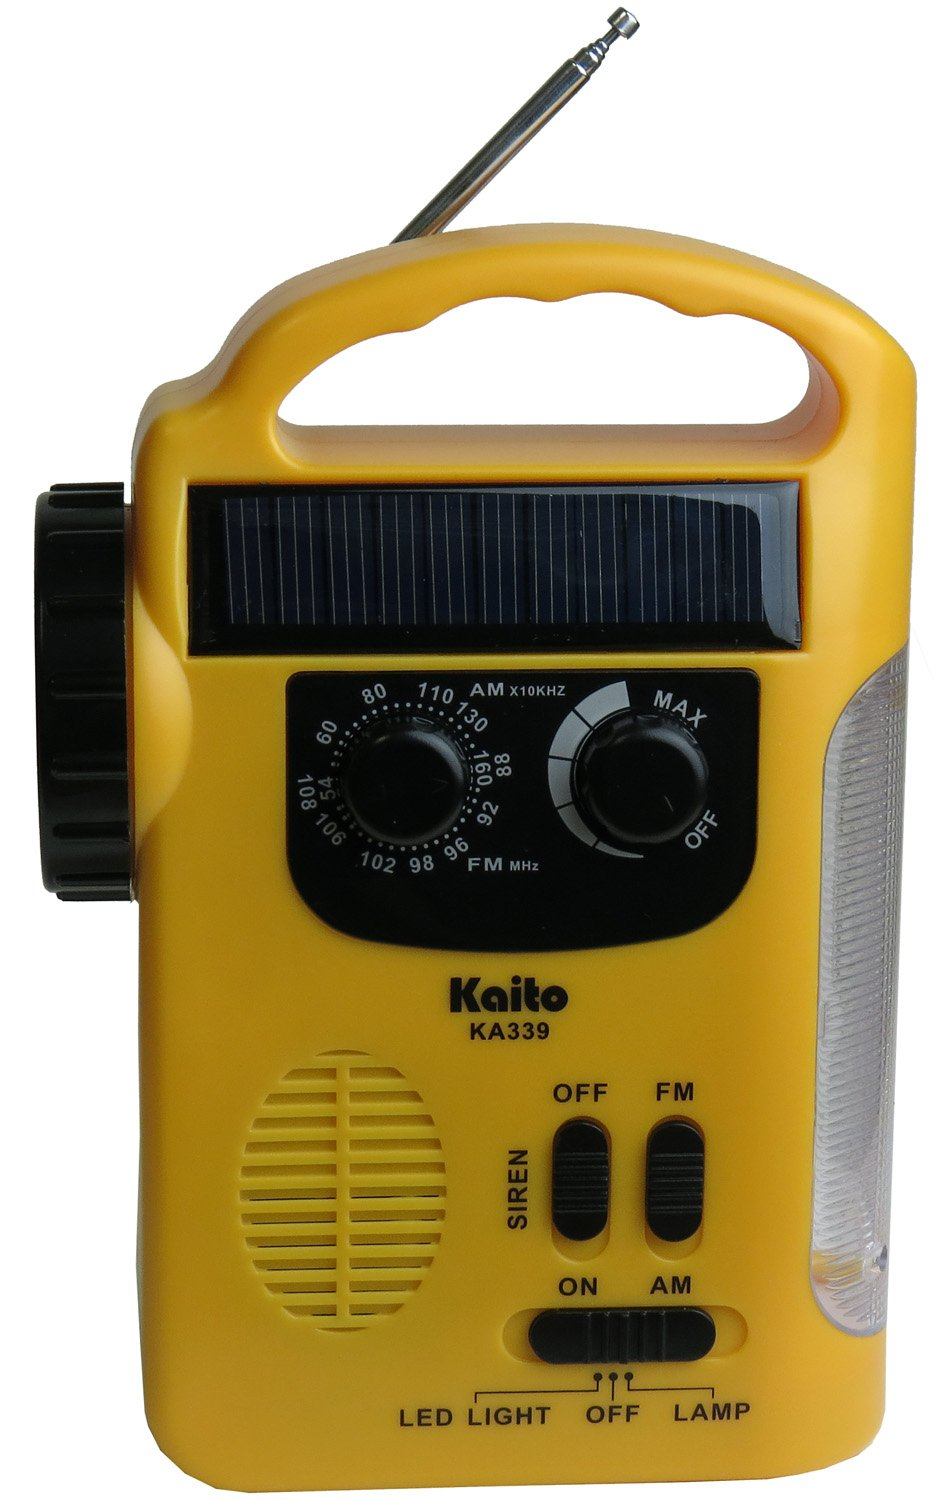 Kaito KA339 Dynamo Solar Powered AM/FM Radio With Solar Panel and Charge out Feature (Yellow)